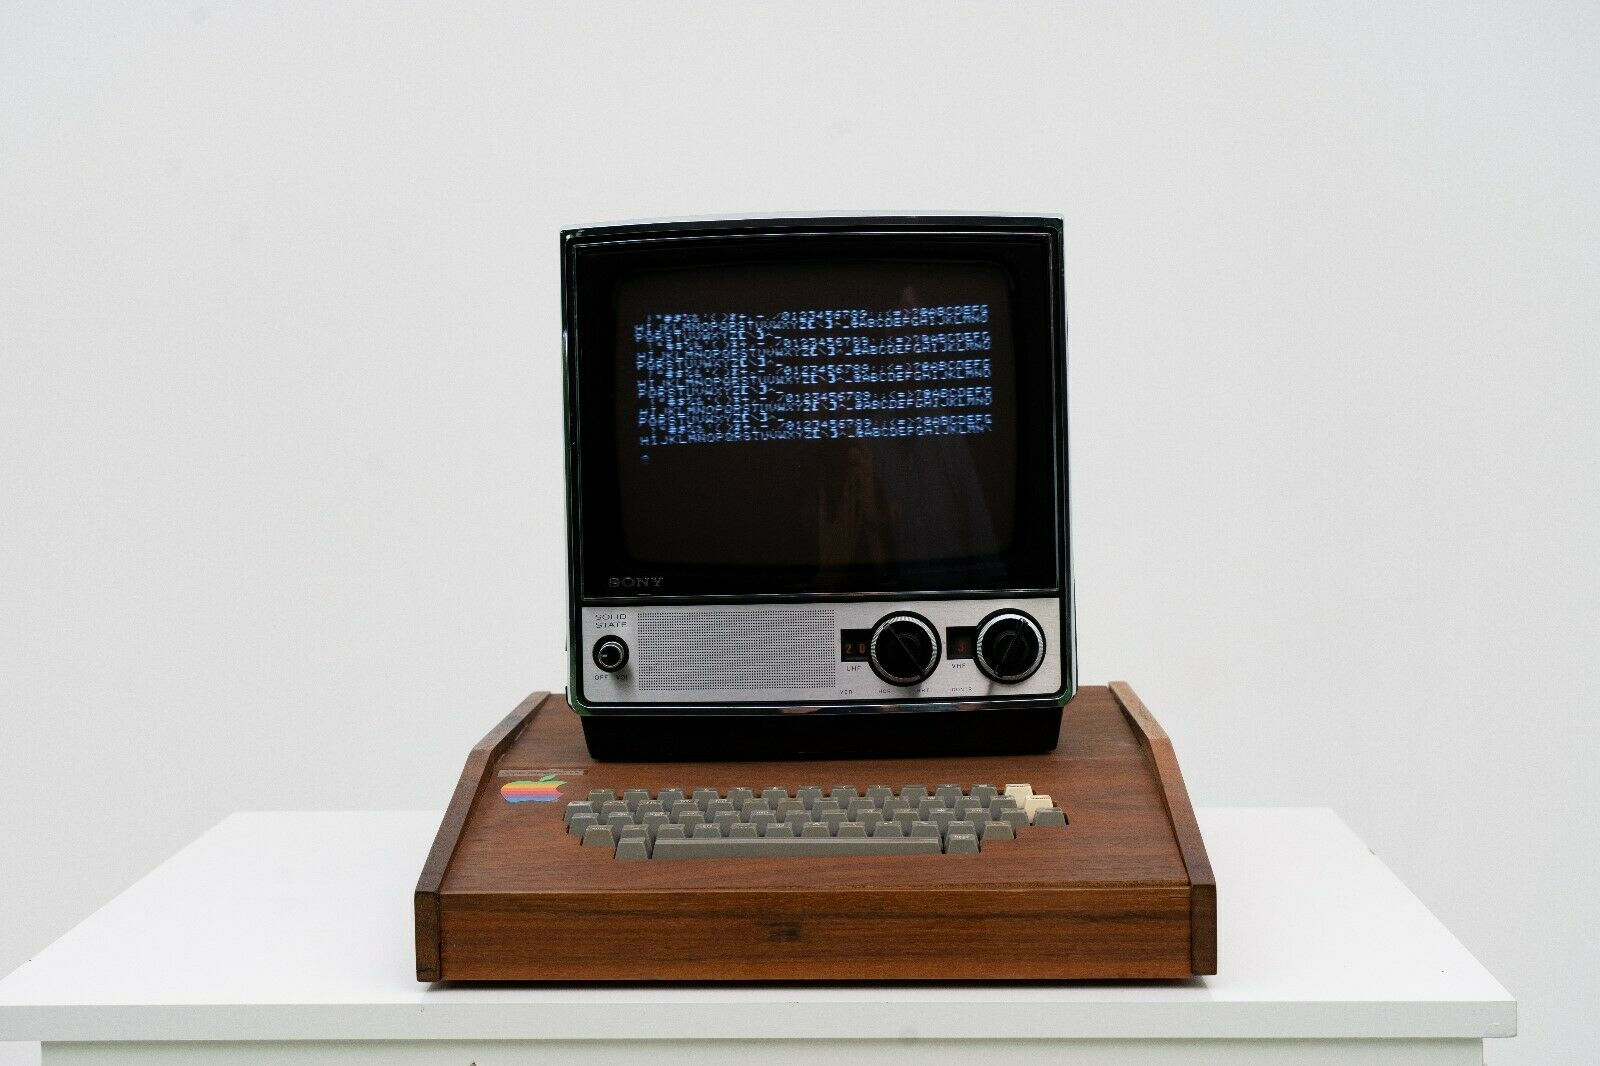 Apple-1 eBay listing